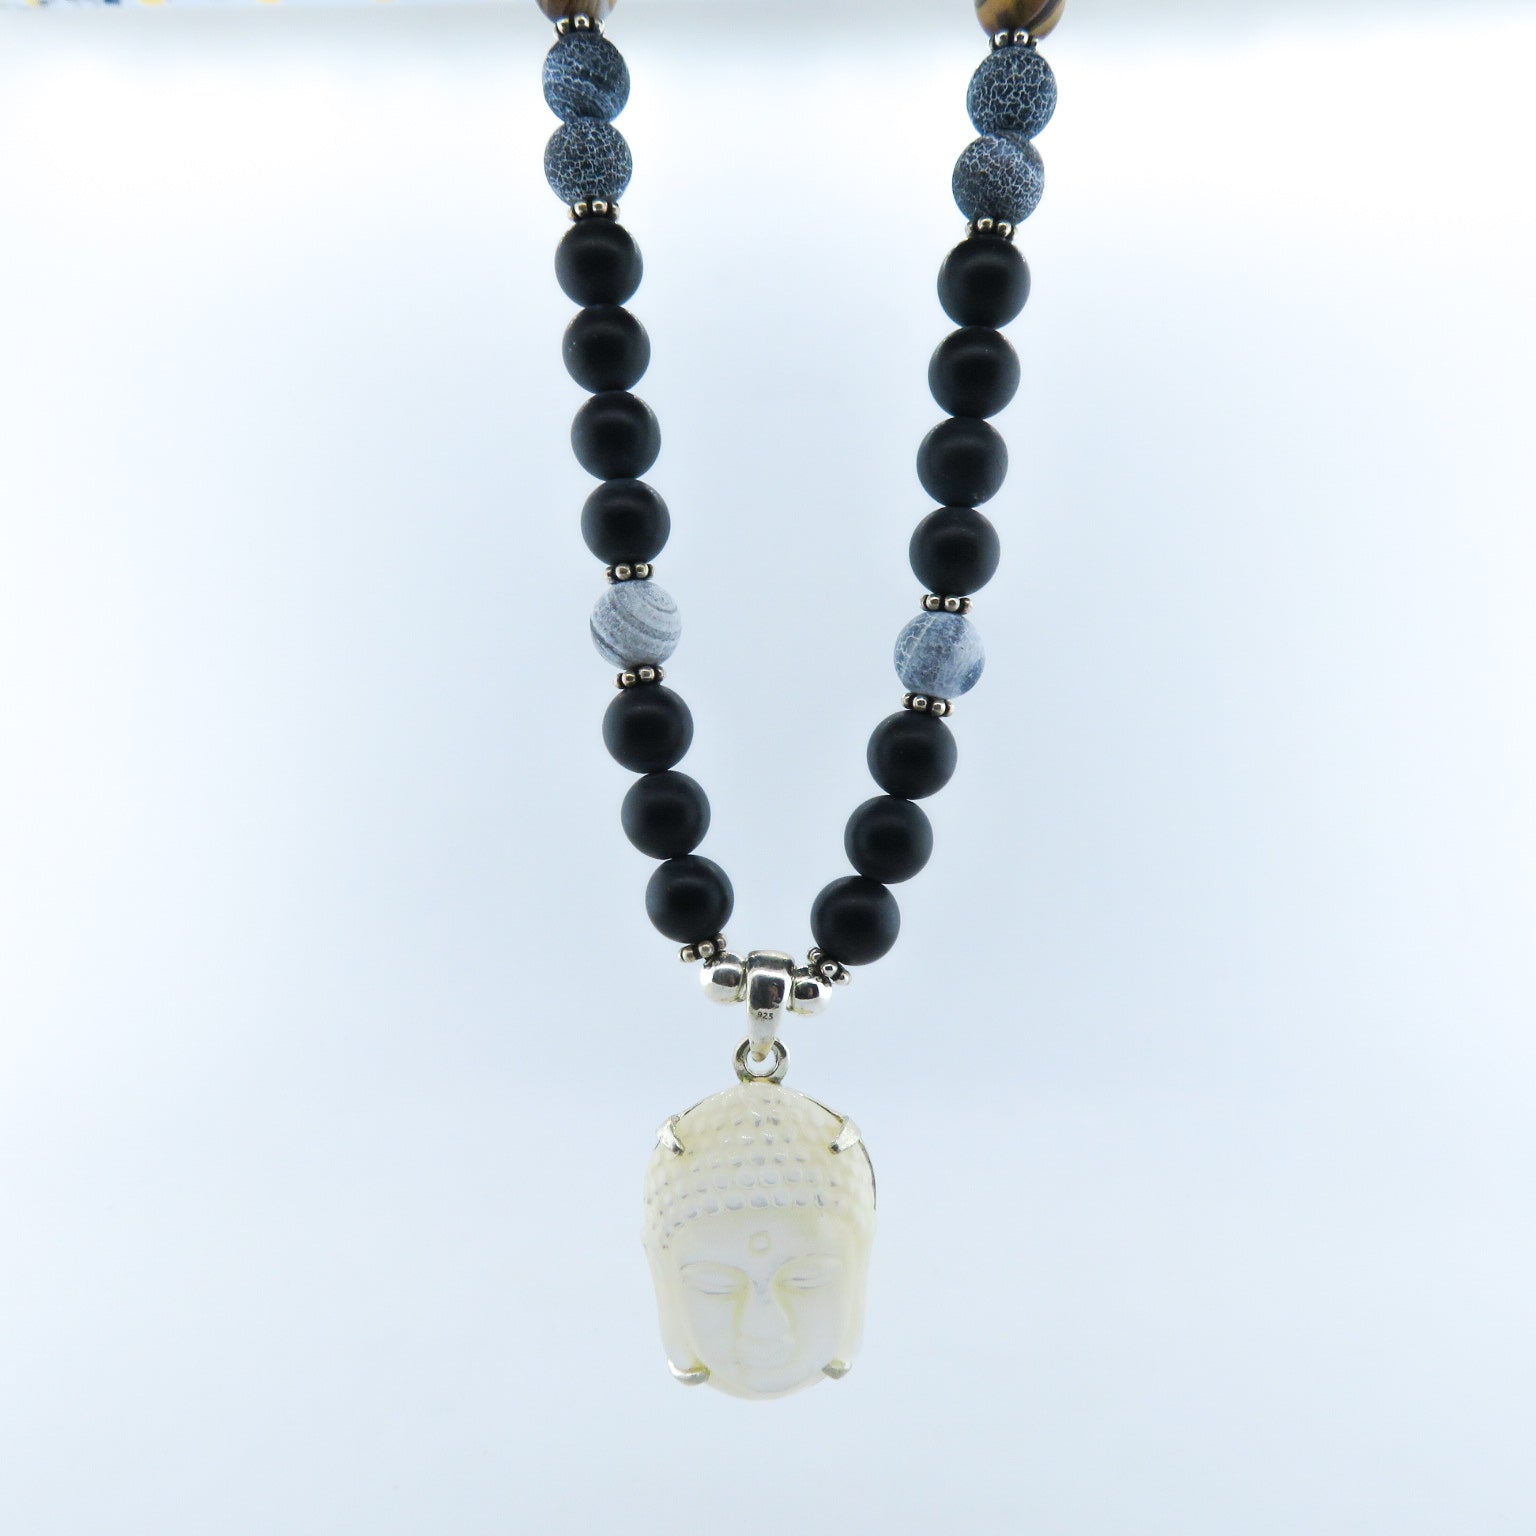 Mother of Pearl Buddha Head Necklace with Black Onyx, Agate, Lava and Silver Beads